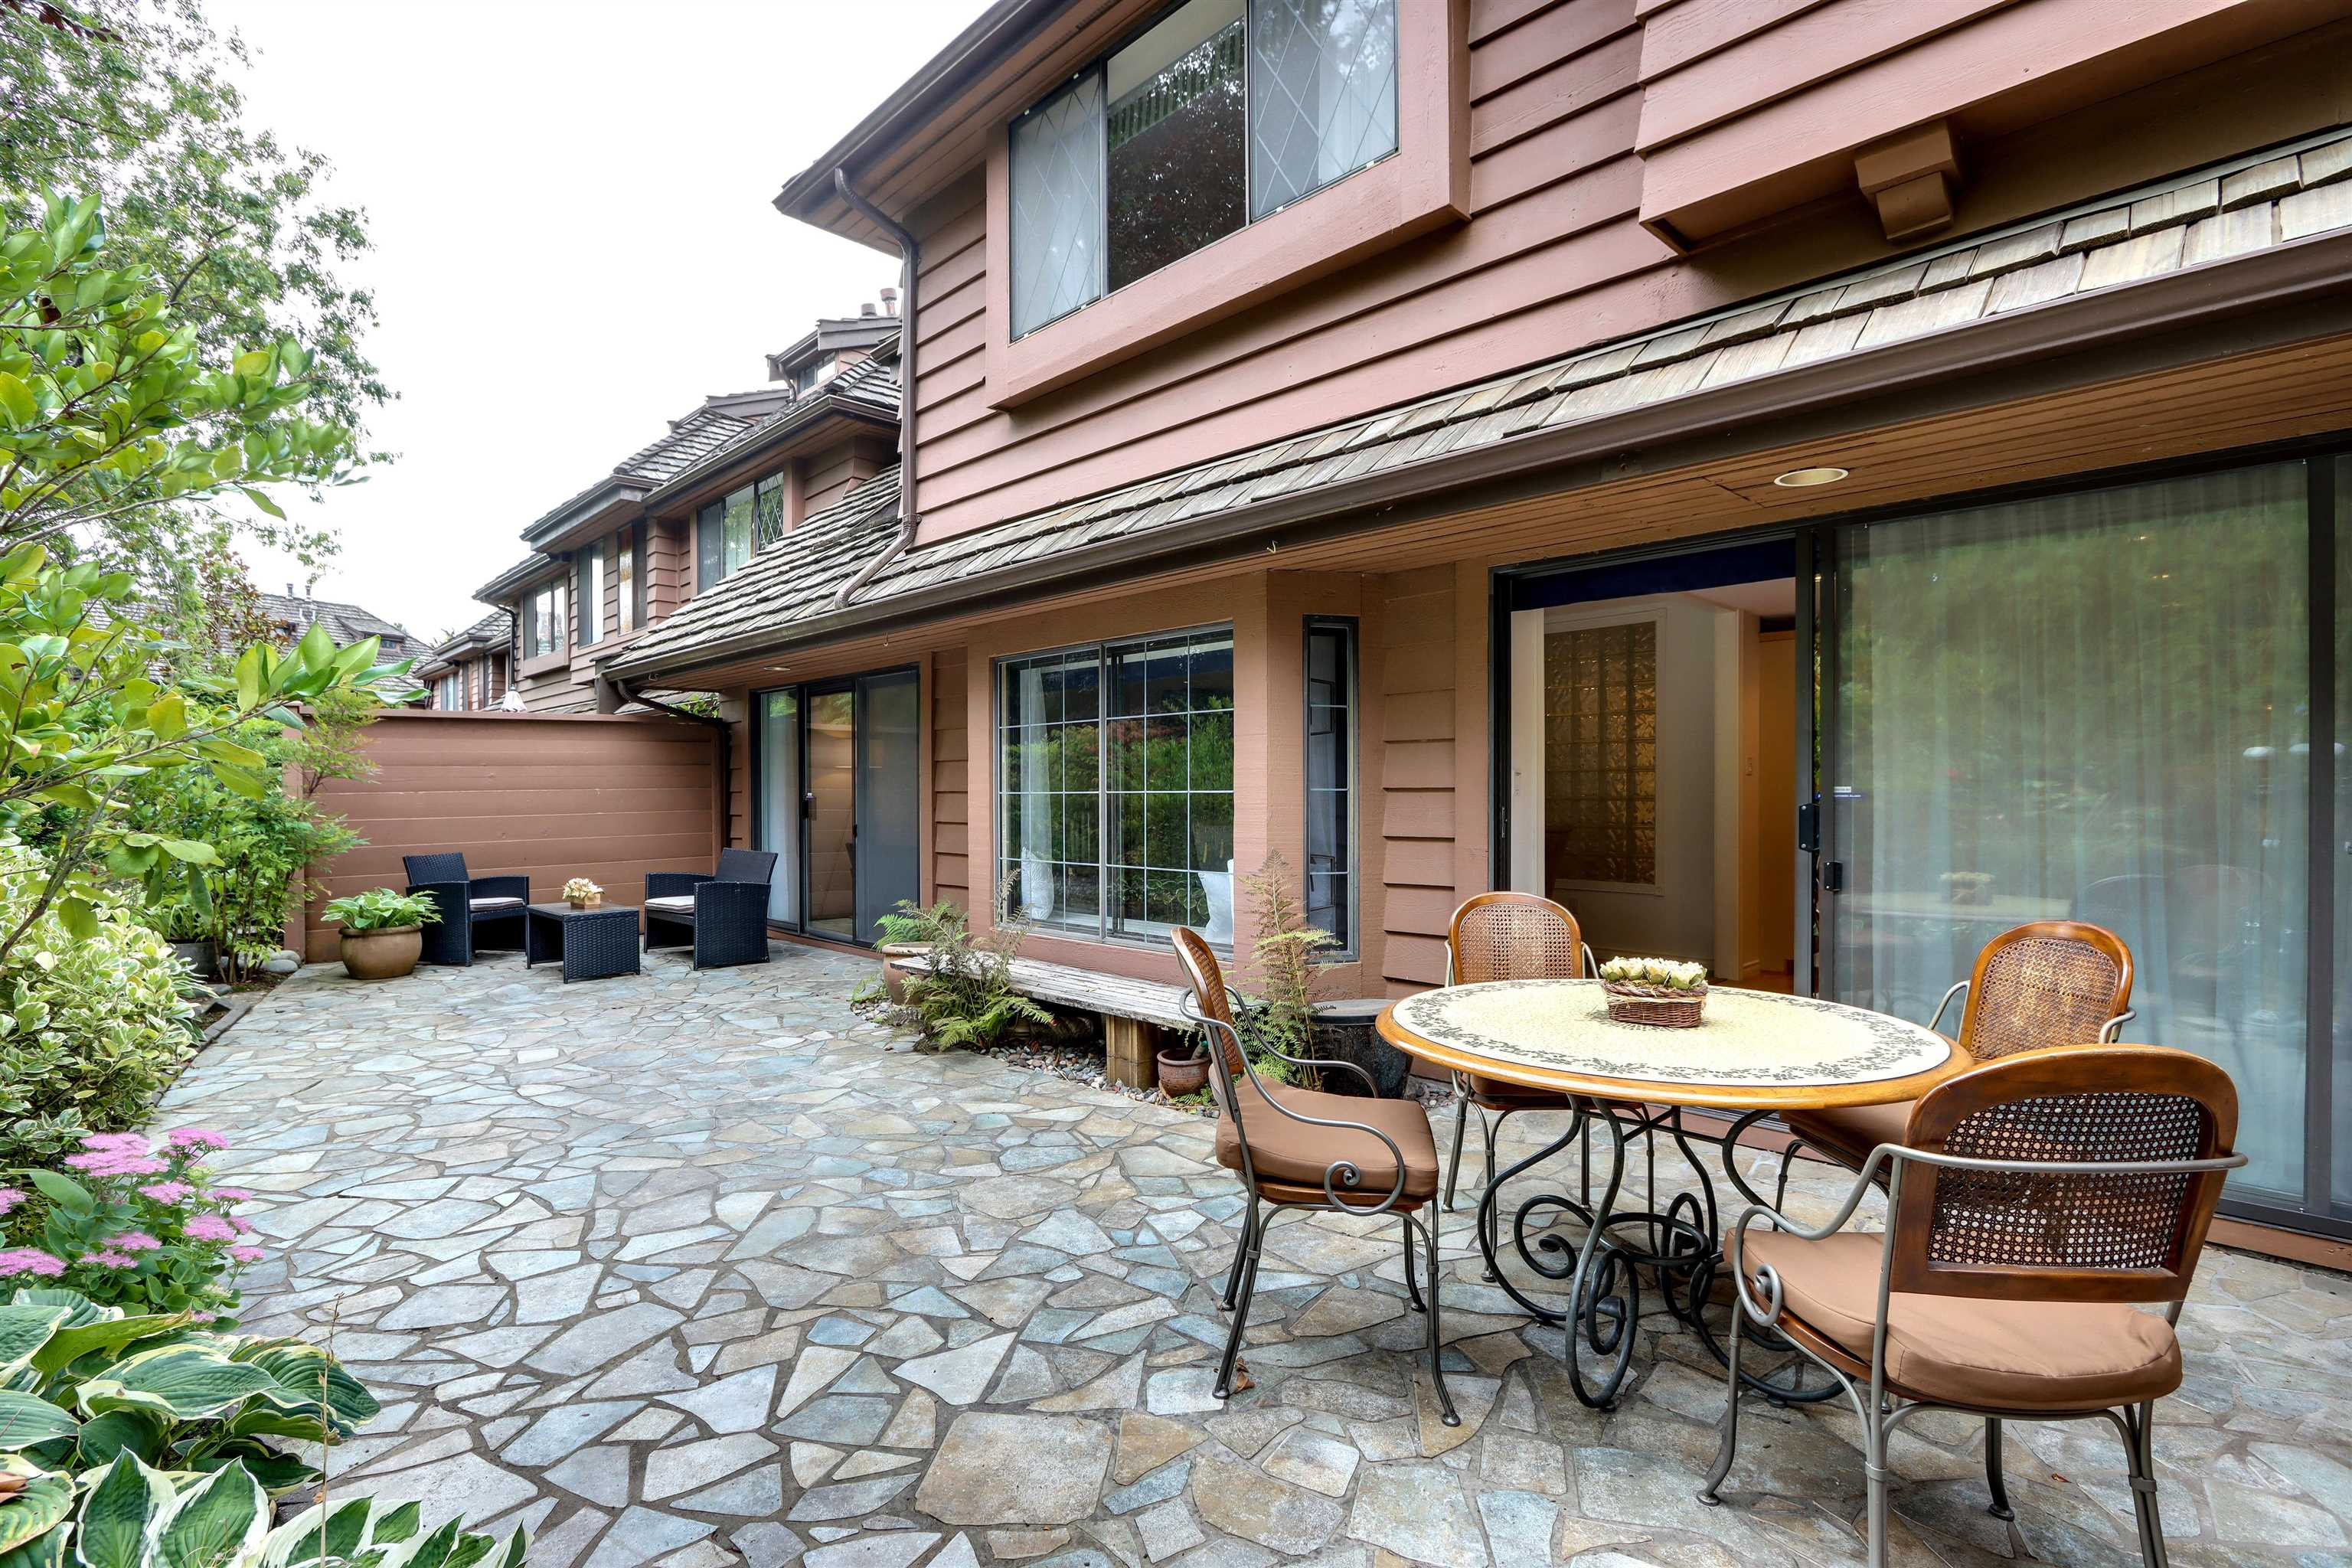 37 6600 LUCAS ROAD - Woodwards Townhouse for sale, 3 Bedrooms (R2617389) - #17